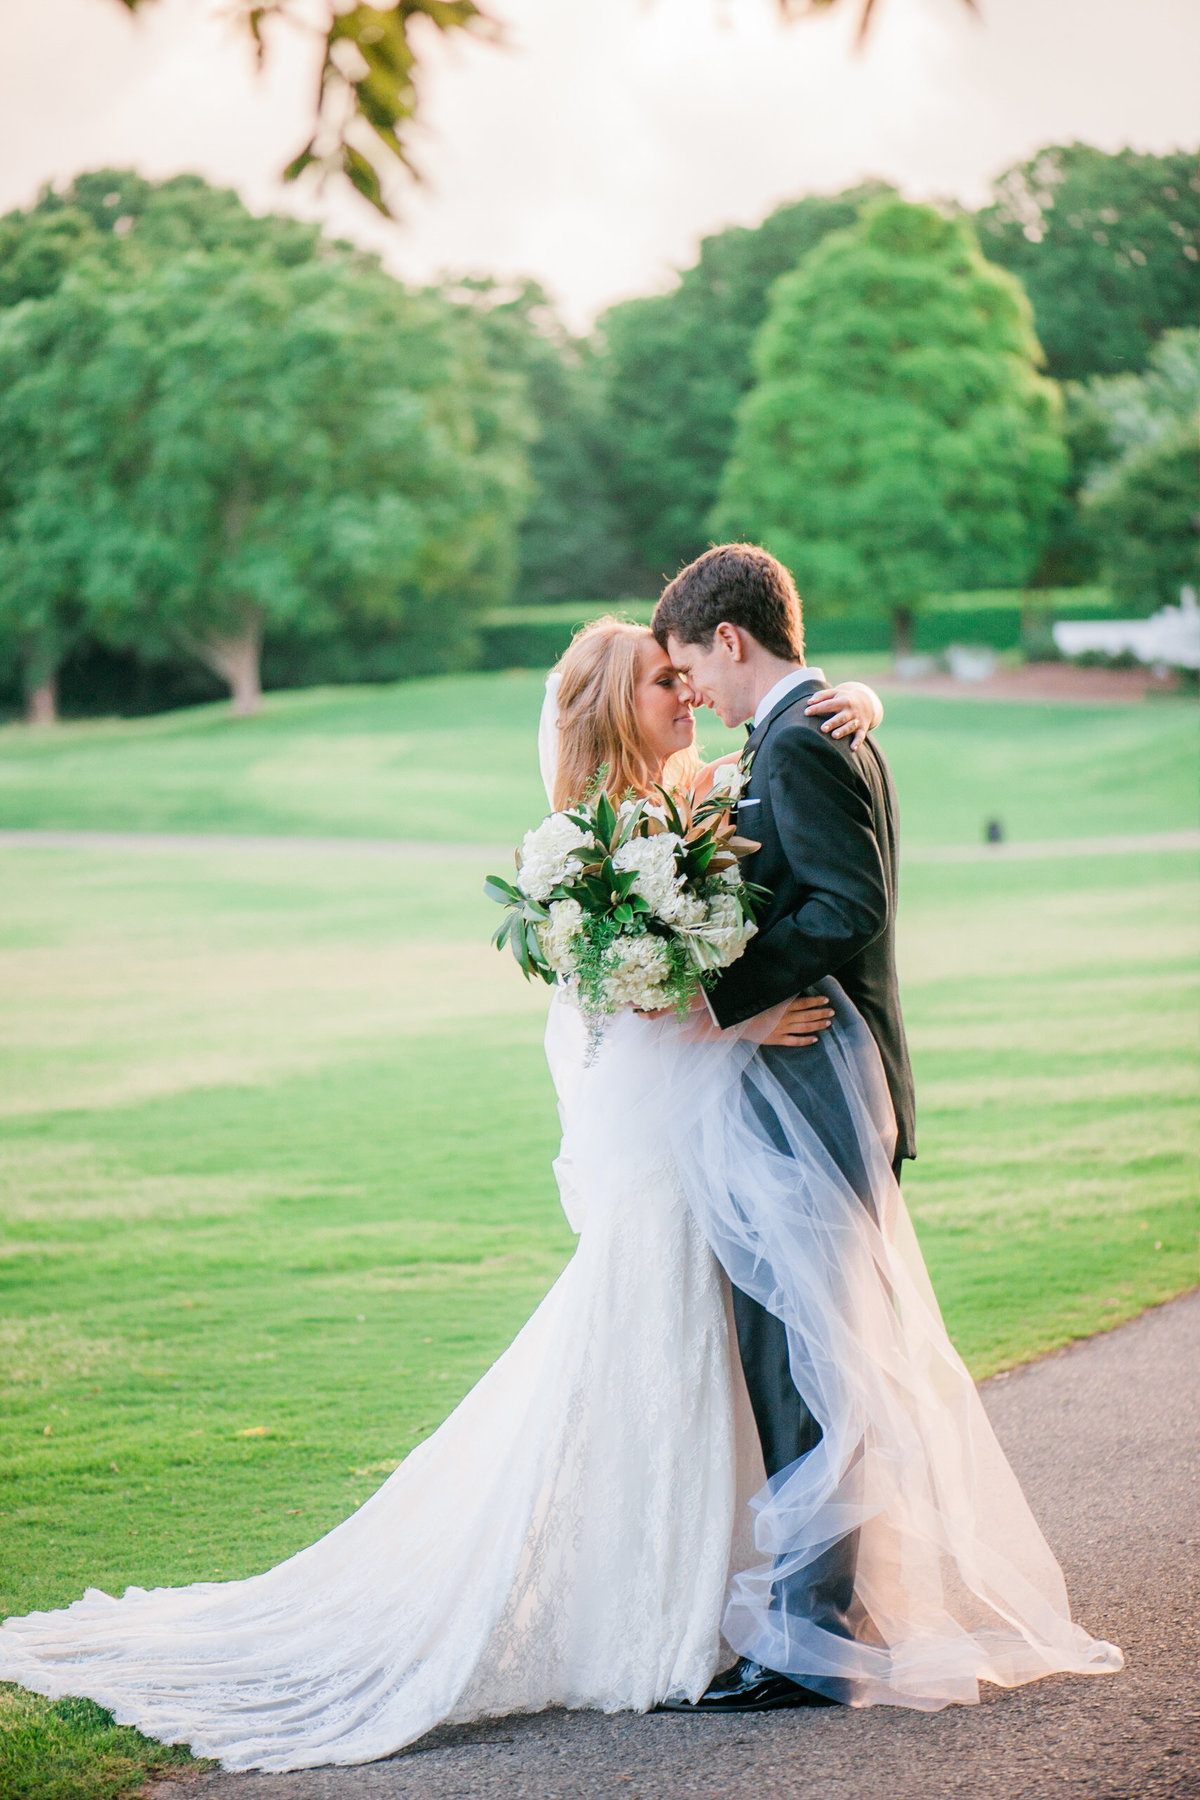 StevenandChandler|CharlotteCountryClubWedding31